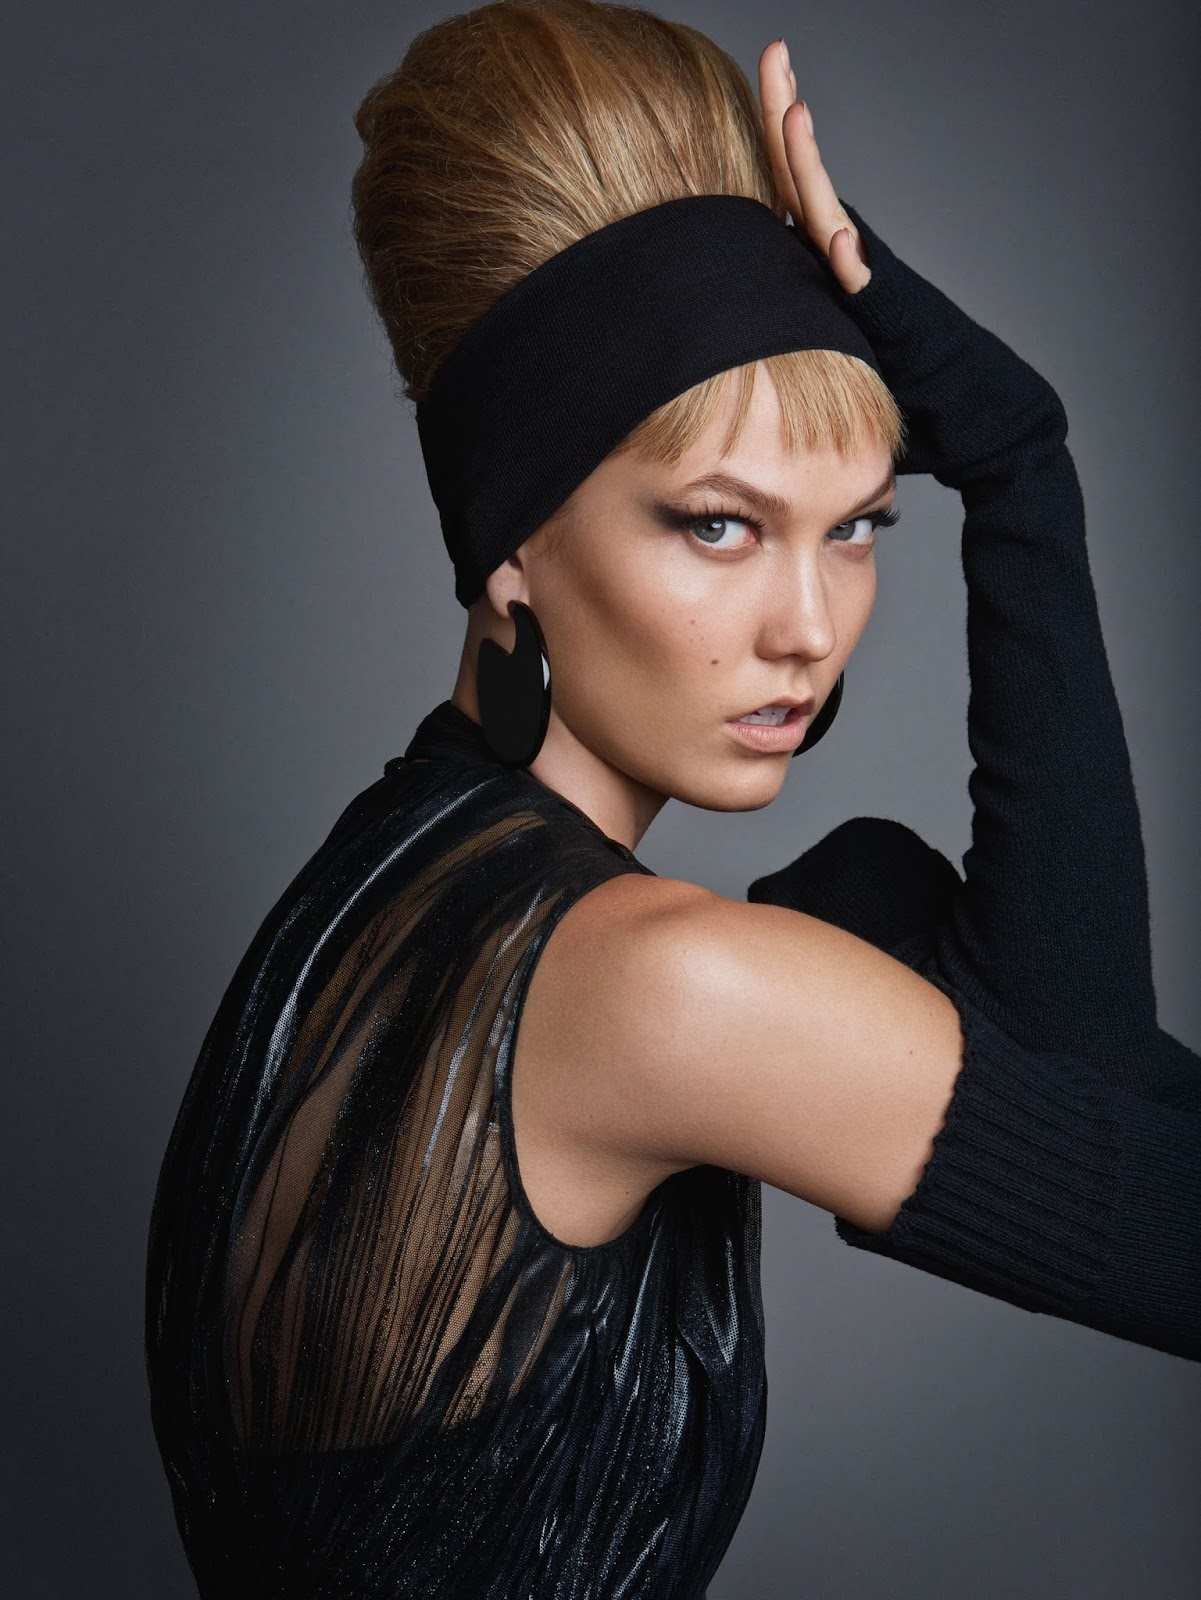 Karlie-Kloss-by-Patrick-Demarchelier.jpg